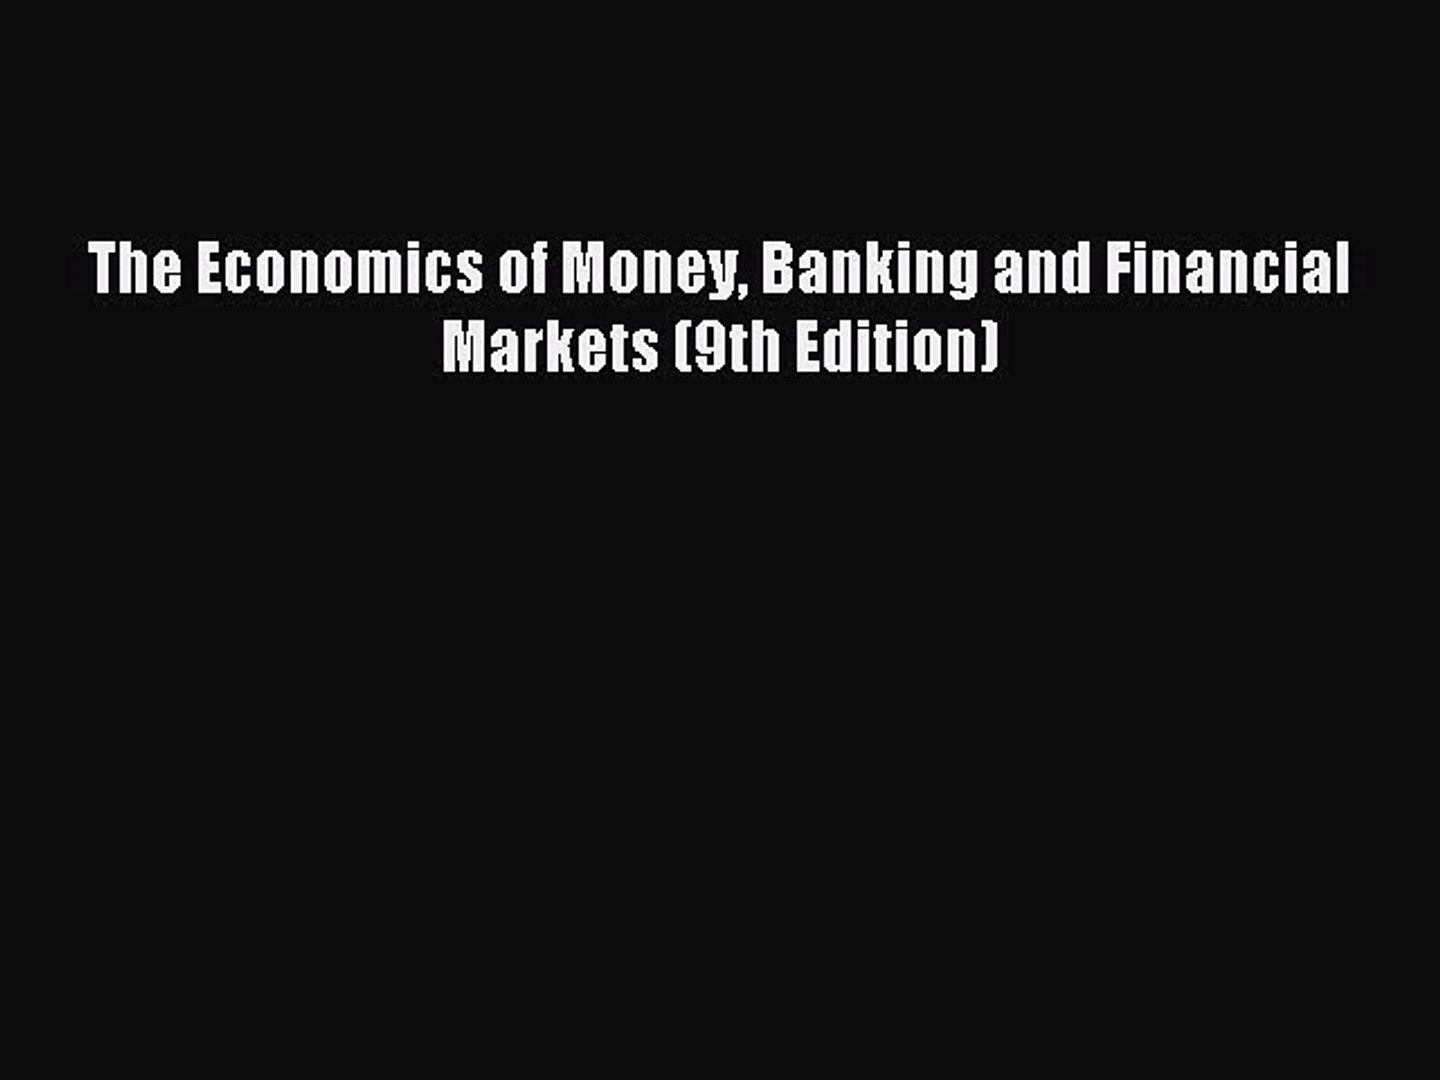 Download The Economics of Money Banking and Financial Markets (9th Edition) Ebook Online